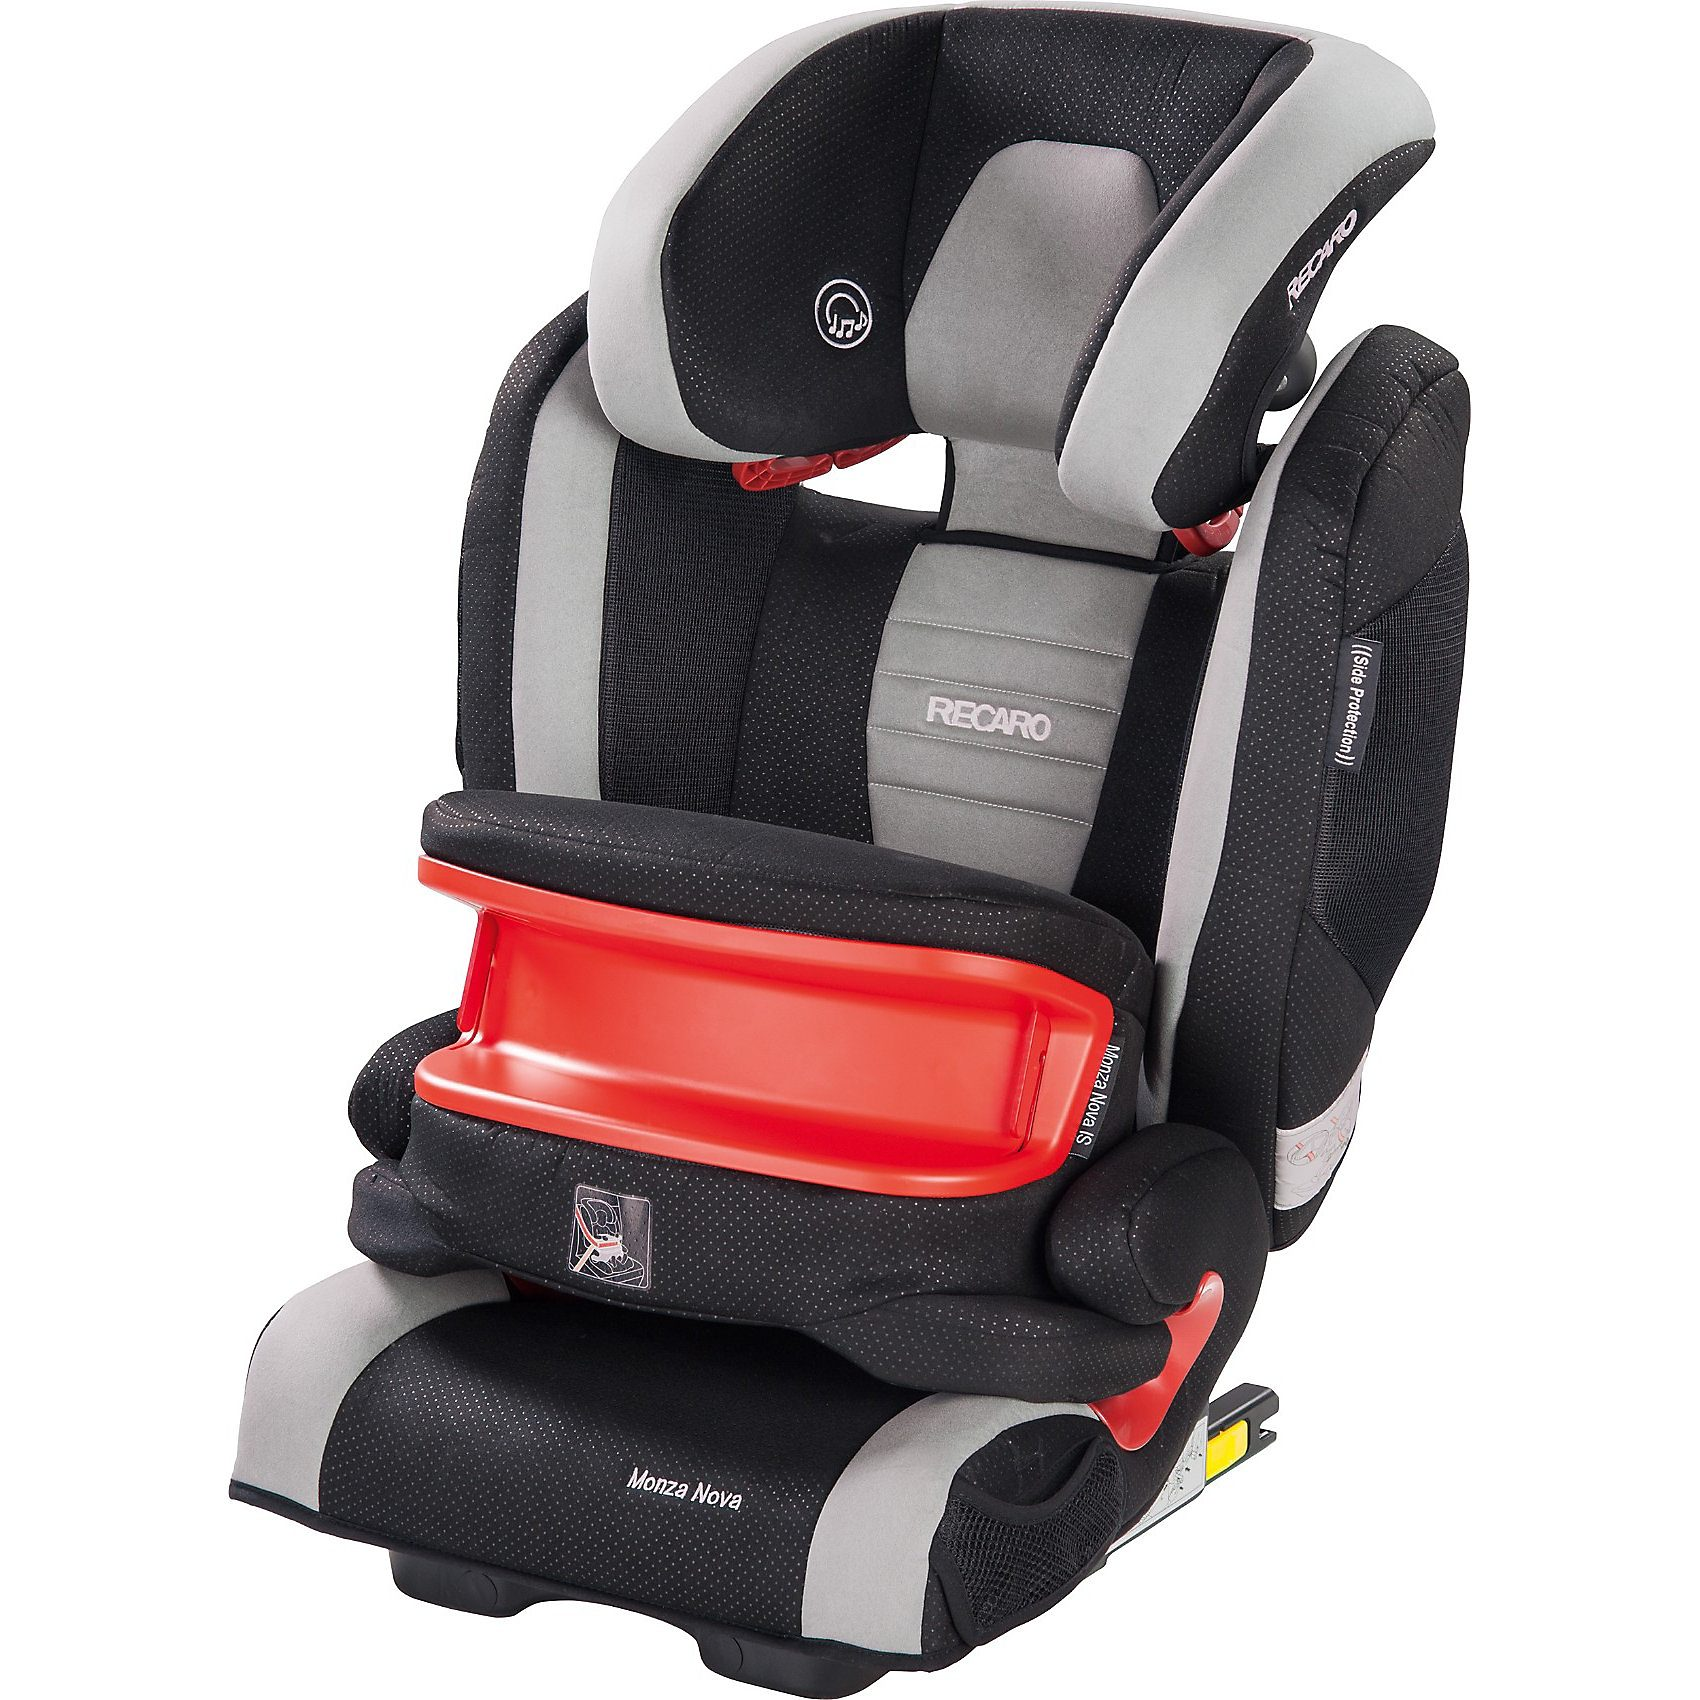 RECARO Auto-Kindersitz Monza Nova IS Seatfix, Graphite